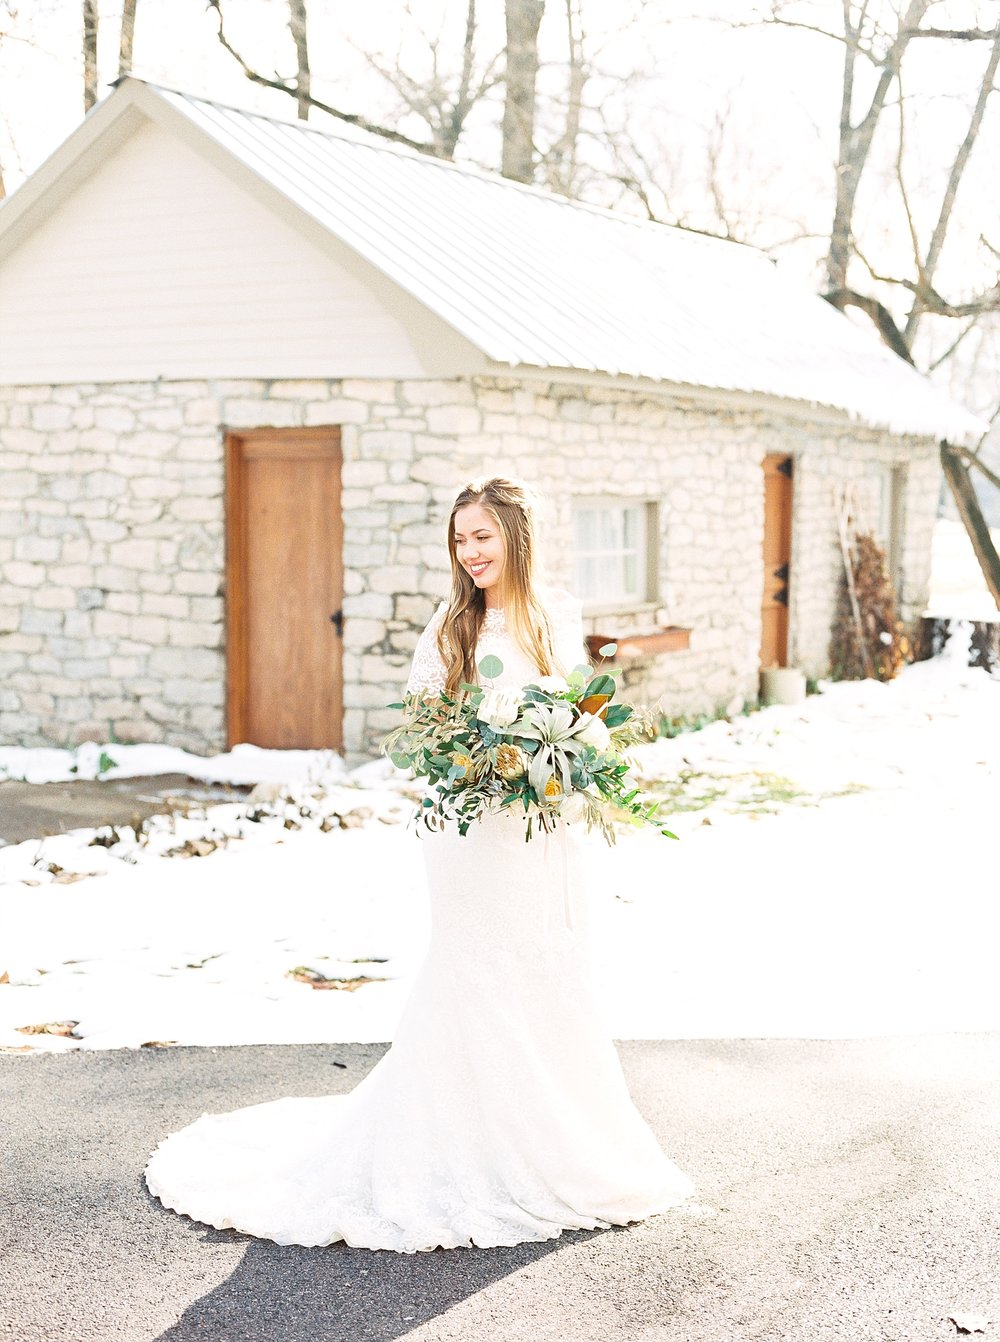 Snowy Winter Wedding at Wildcliff Events Lake With Earthy Jewel Tones and Organic Refined Style by Kelsi Kliethermes Photography Kansas City Missouri Wedding Photographer_0142.jpg